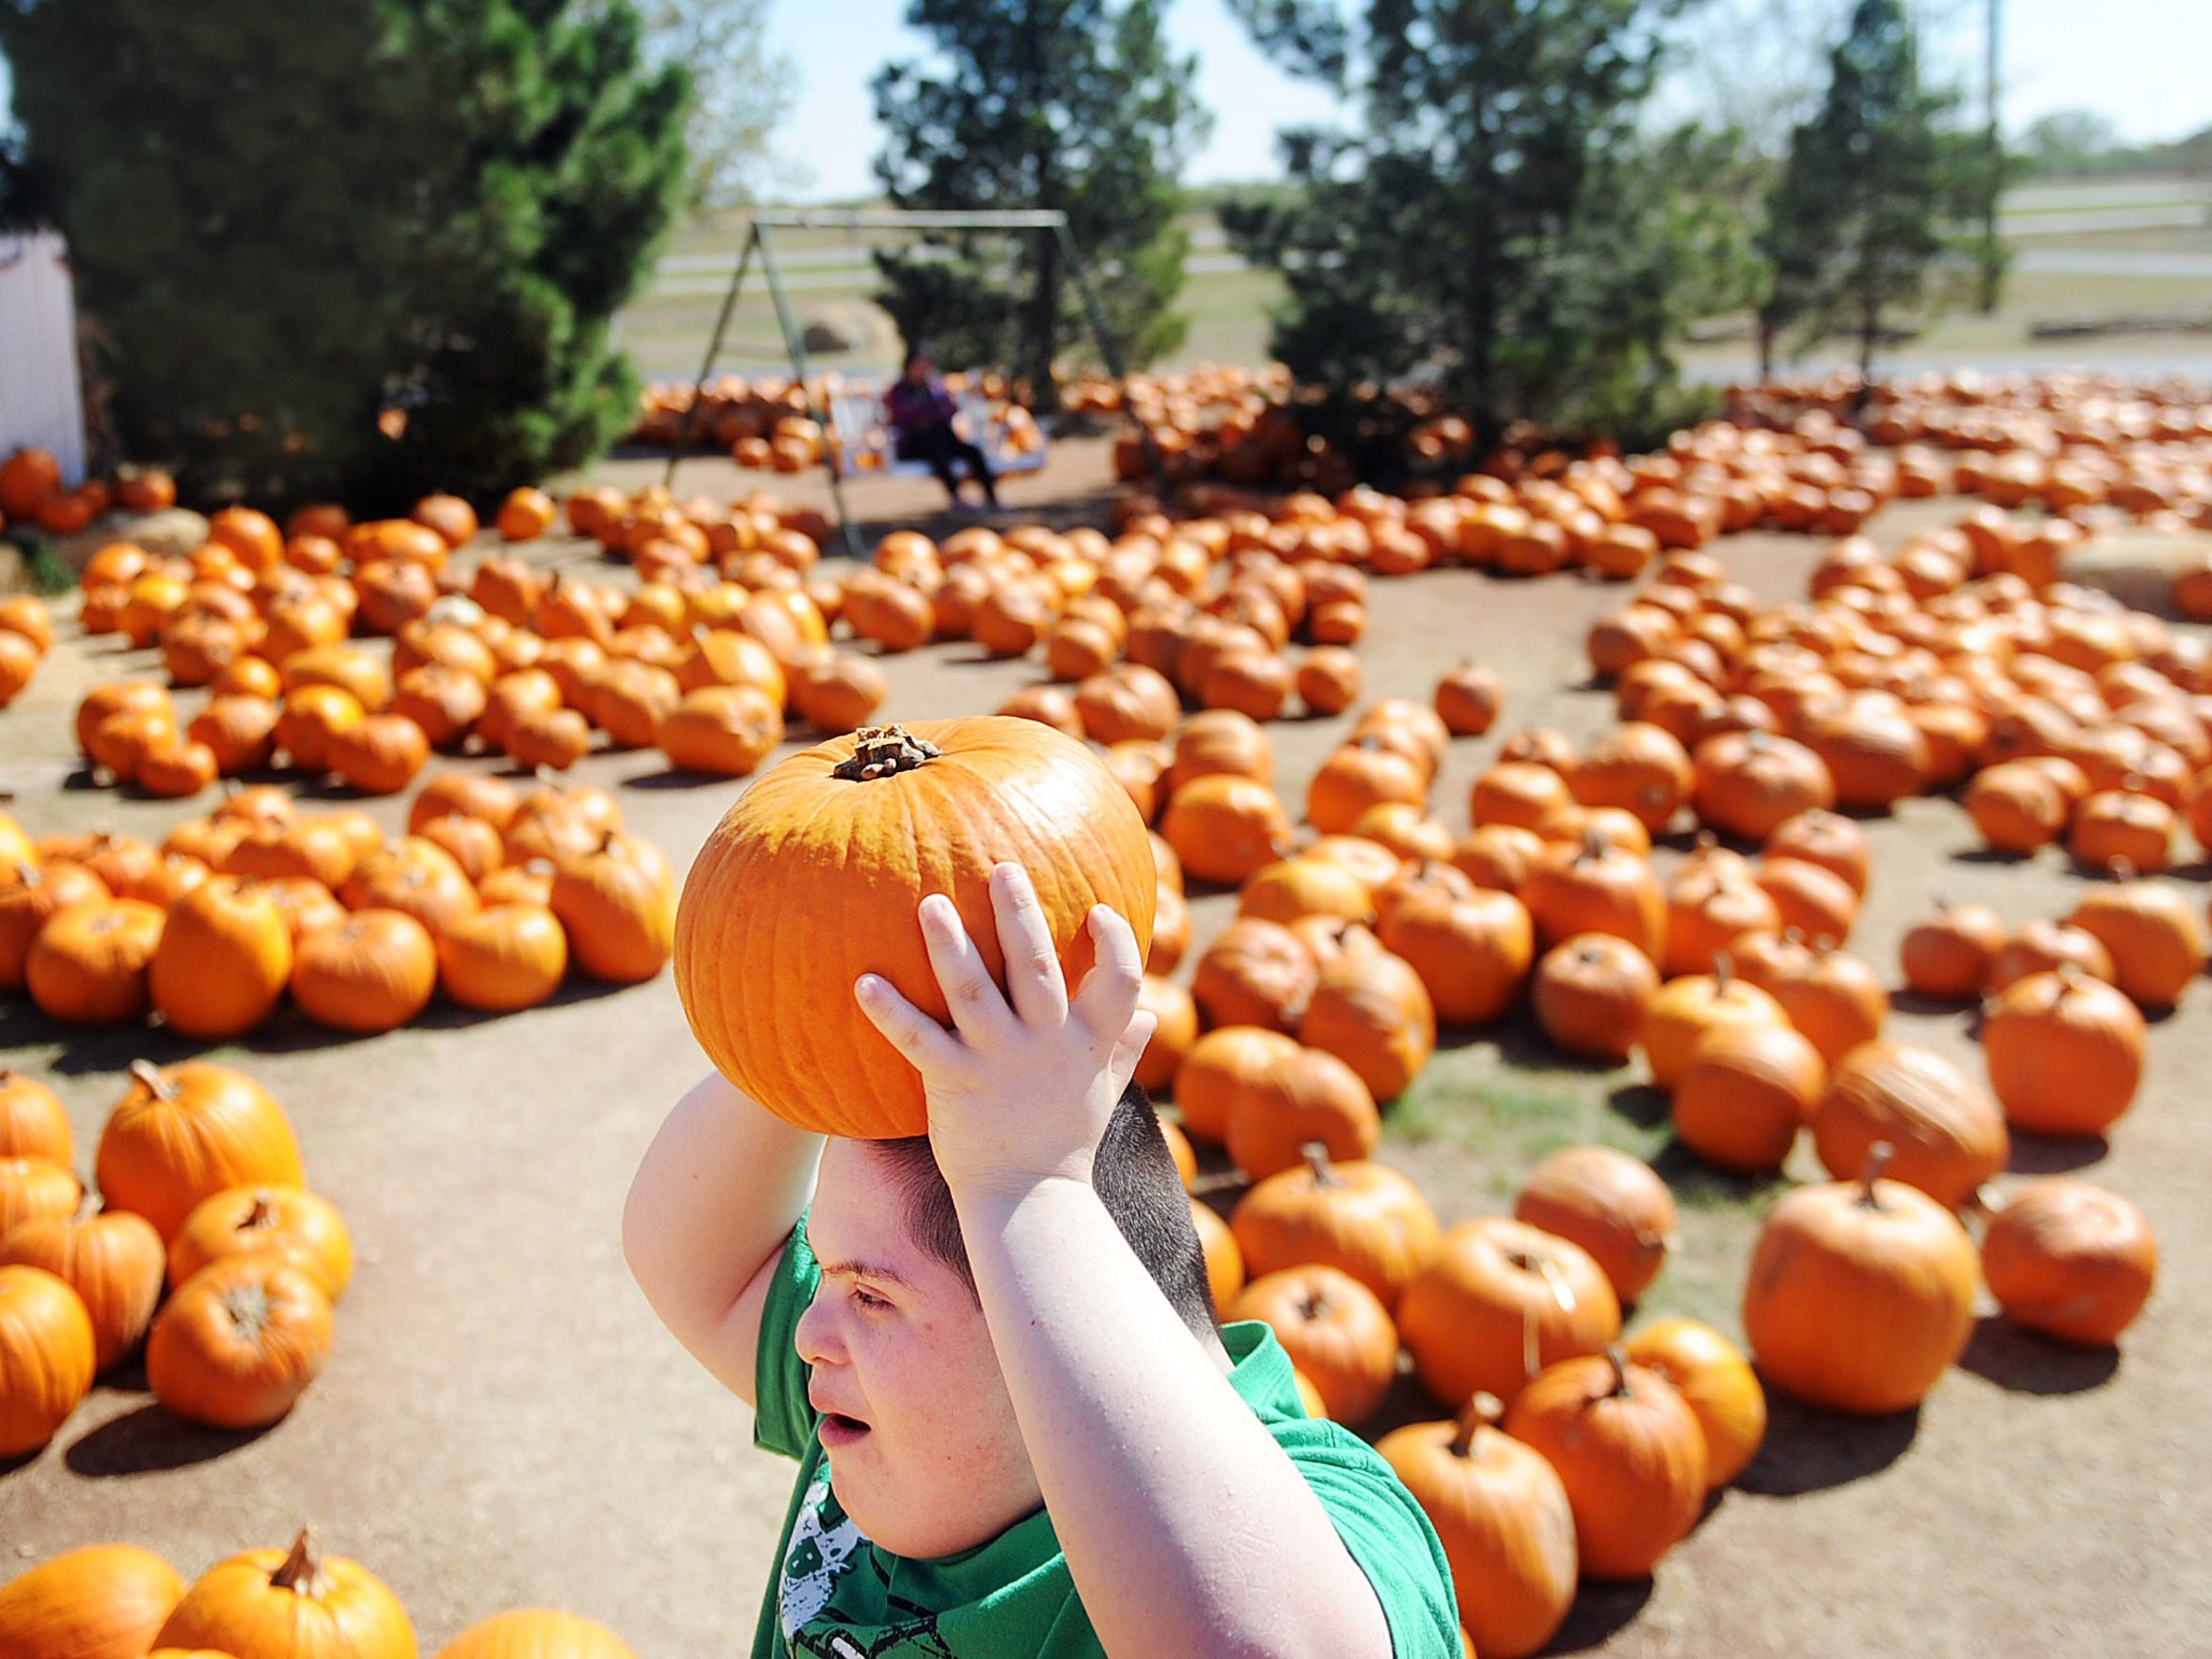 Jesus Arellano,13, totes a pumpkin at the Disability Resources Inc. Pumpkin Patch sale in October 2014.